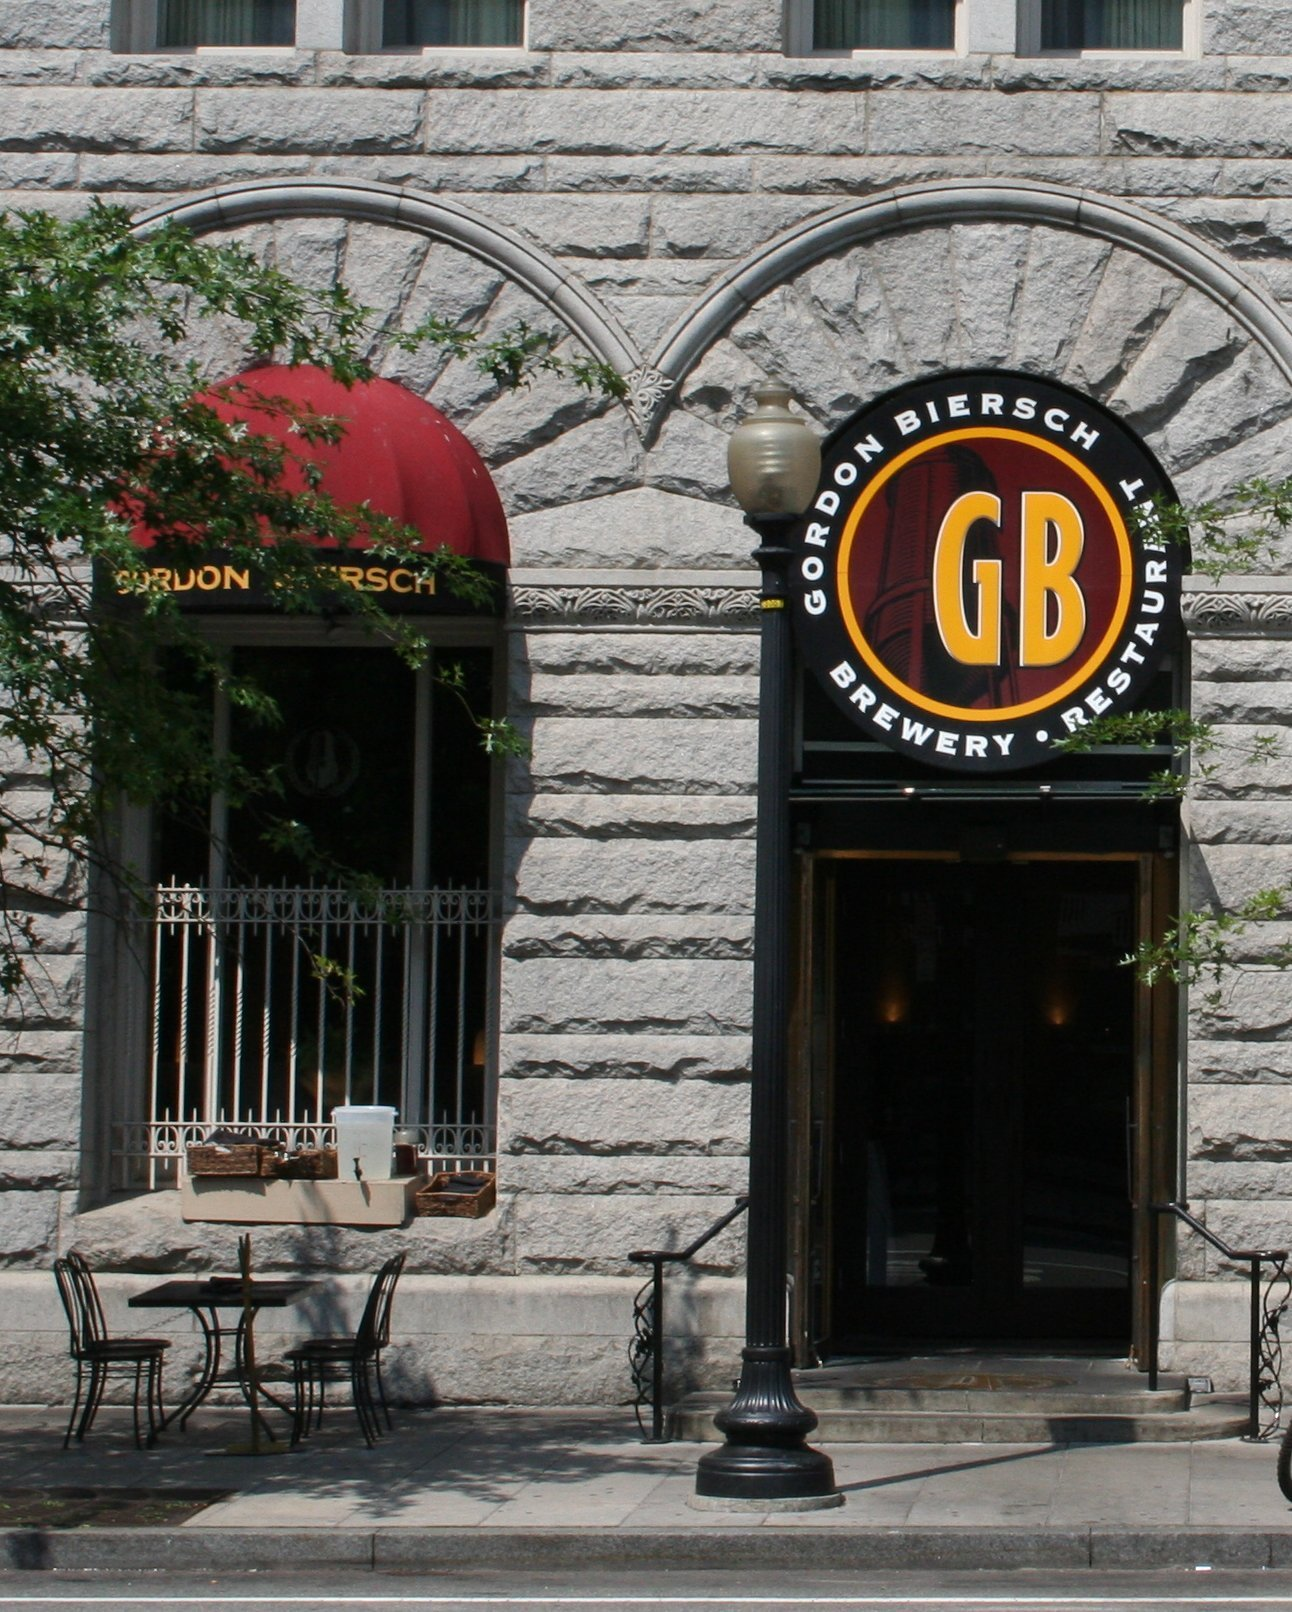 An exterior photo of Gordon Biersch; Conveniently located in the heart of Washington, DC on F Street in the old Riggs Bank Building, this architectural beauty displays the traditional elegance of the Capitol. The restaurant can accommodate 450 guests with additional patio seating available. Private banquet facilities are also available for 50-60 guests in the upstairs dining room, with a smaller private room on the main floor accommodating 30-35 persons. Full-restaurant banquets are also available seating up to 400 persons.